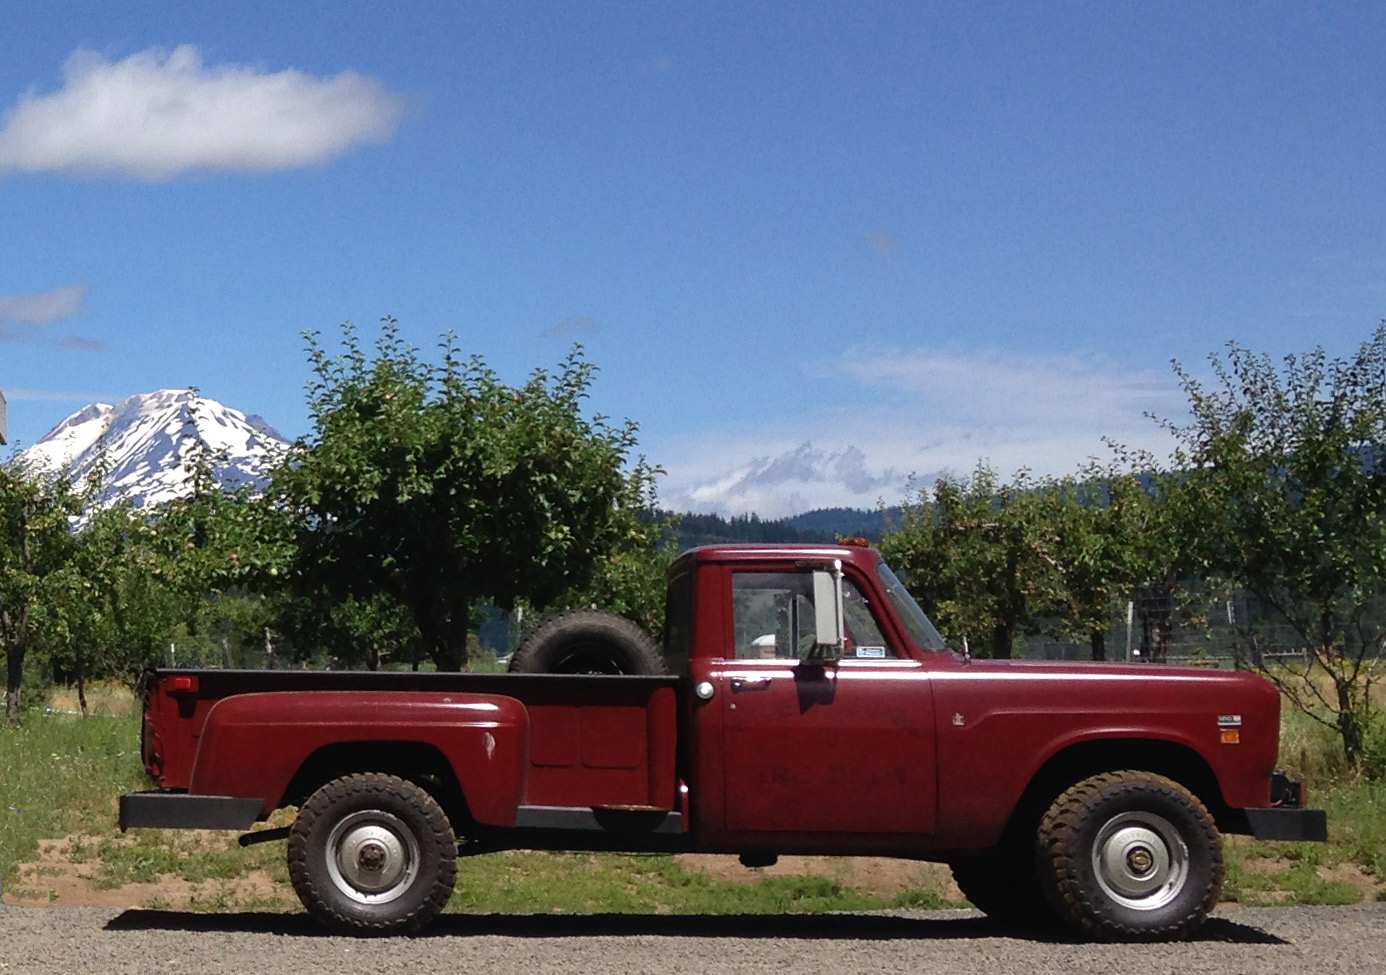 Joe's restored International, in service in the orchard at last.